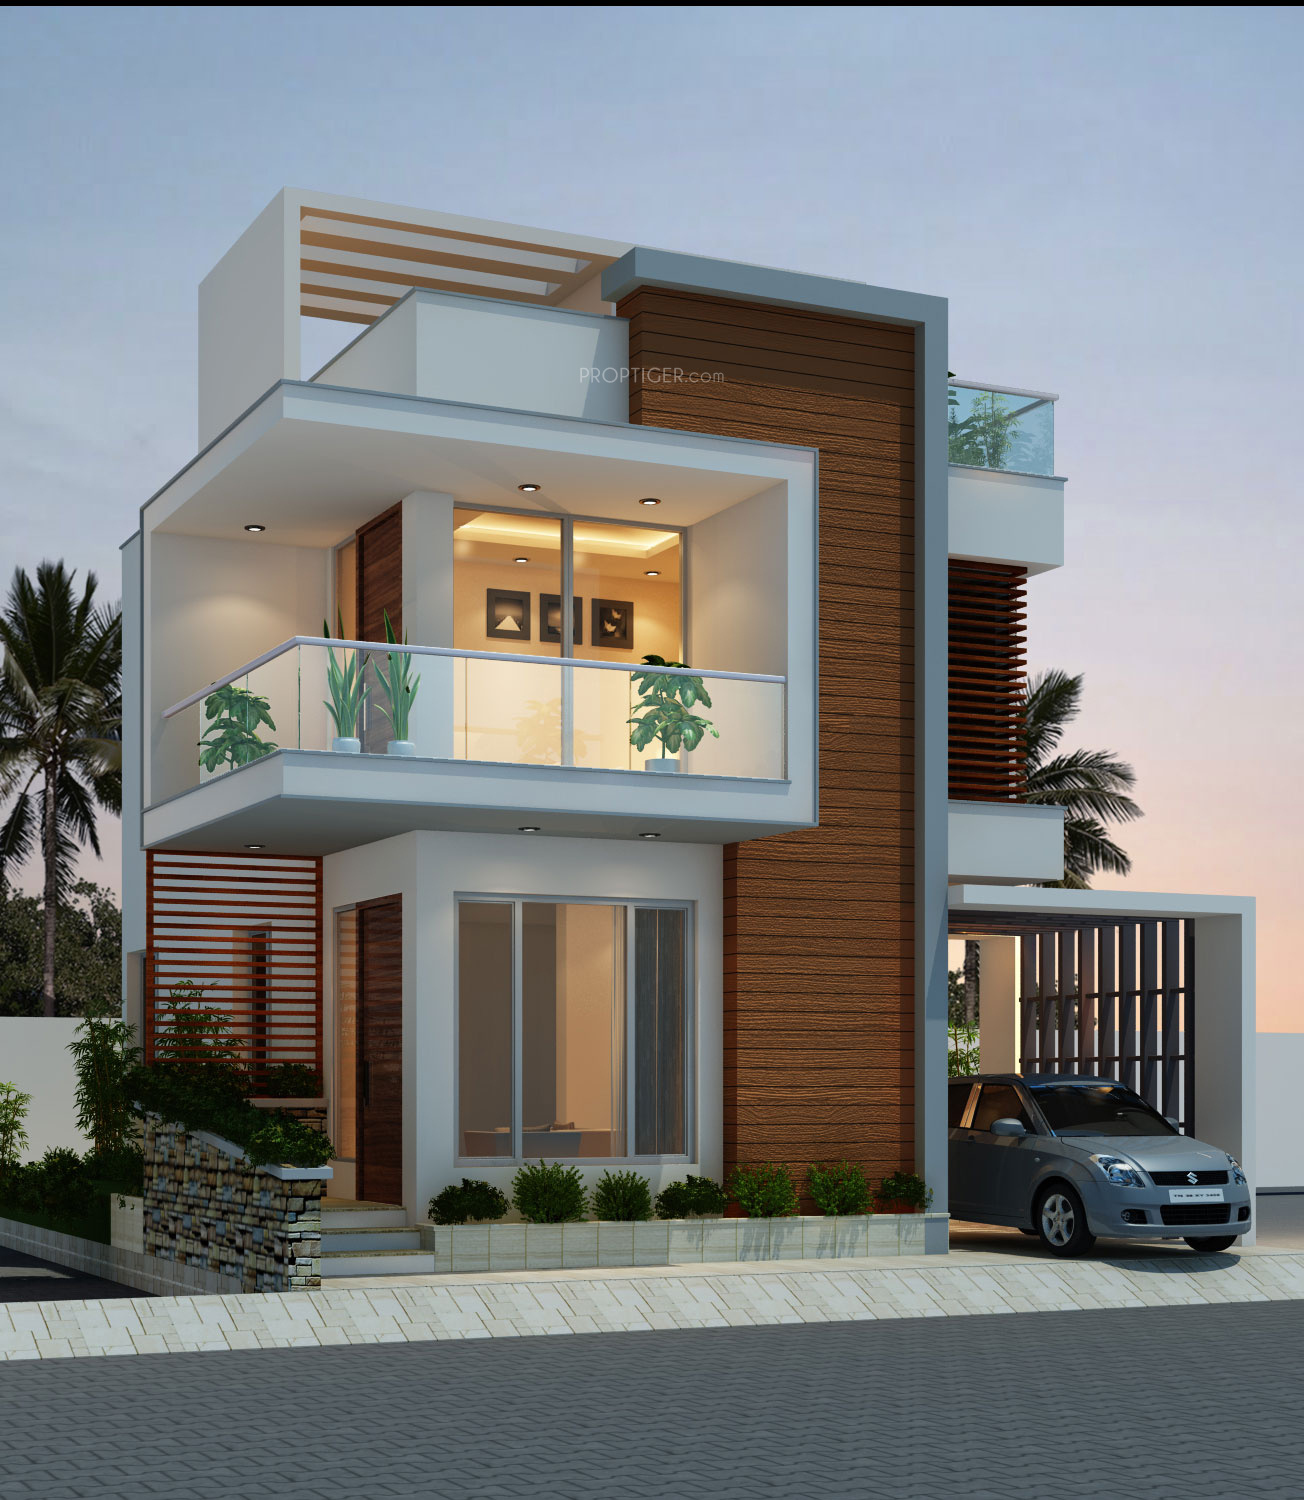 Home Design Exterior Ideas In India: Headway Fortune Residency Villa In Perungalathur, Chennai